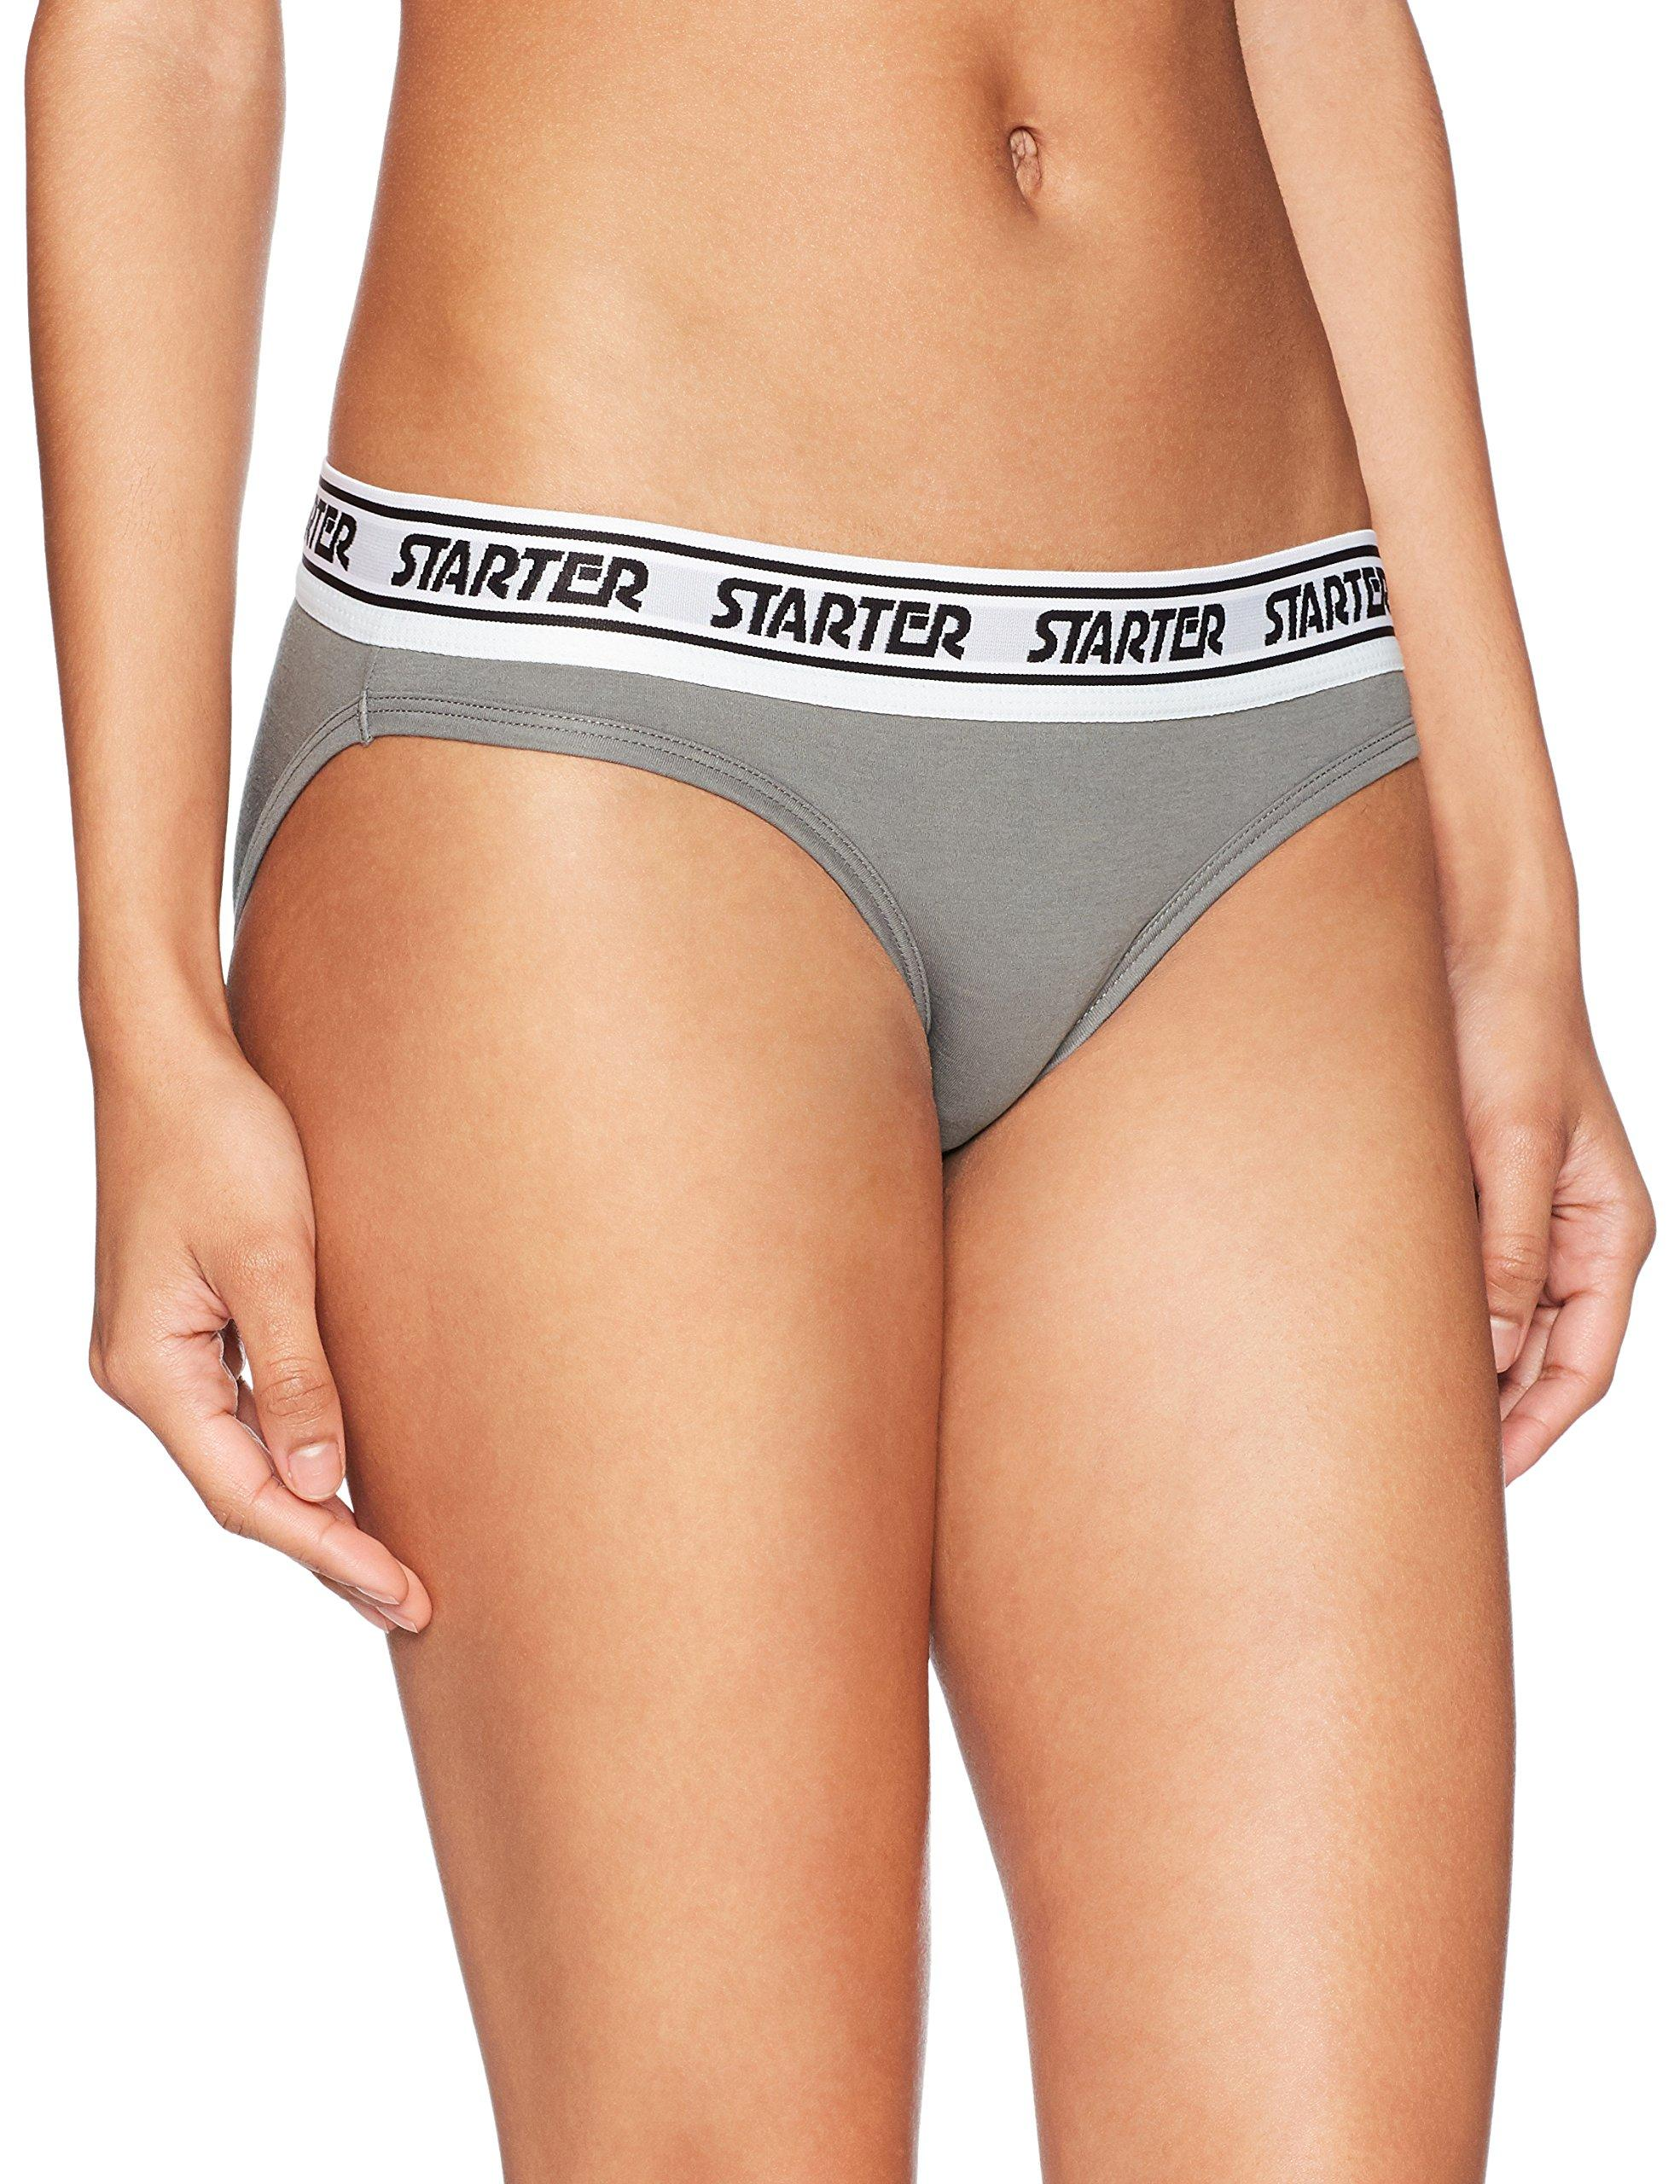 Starter Womens 1-Pack Cotton-Blend Thong Panty Exclusive